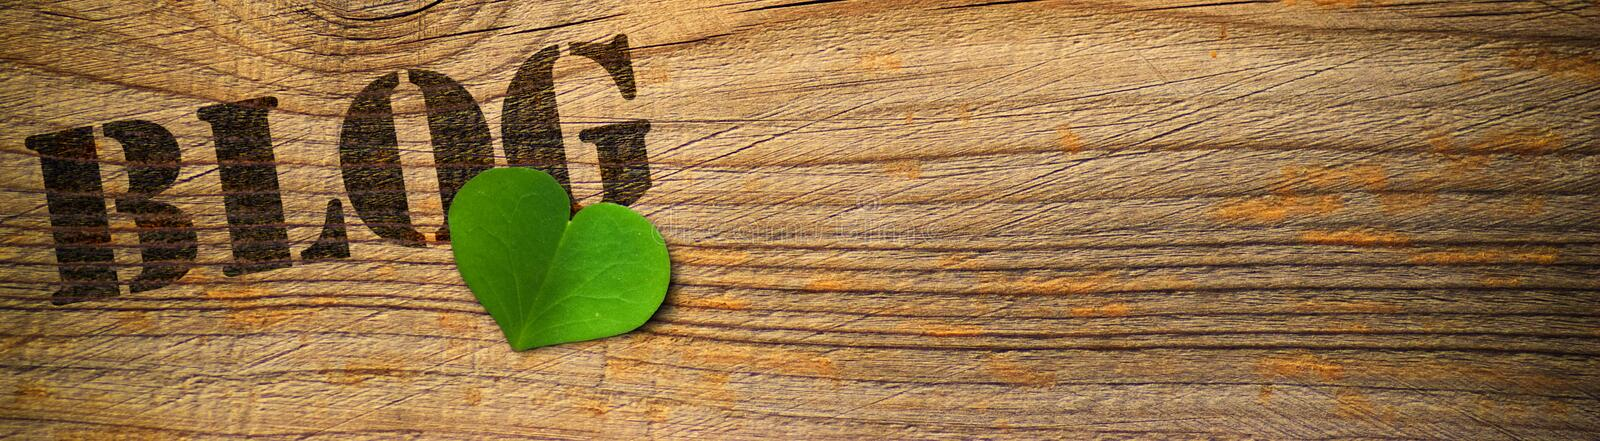 Eco friendly blog - green royalty free stock photography